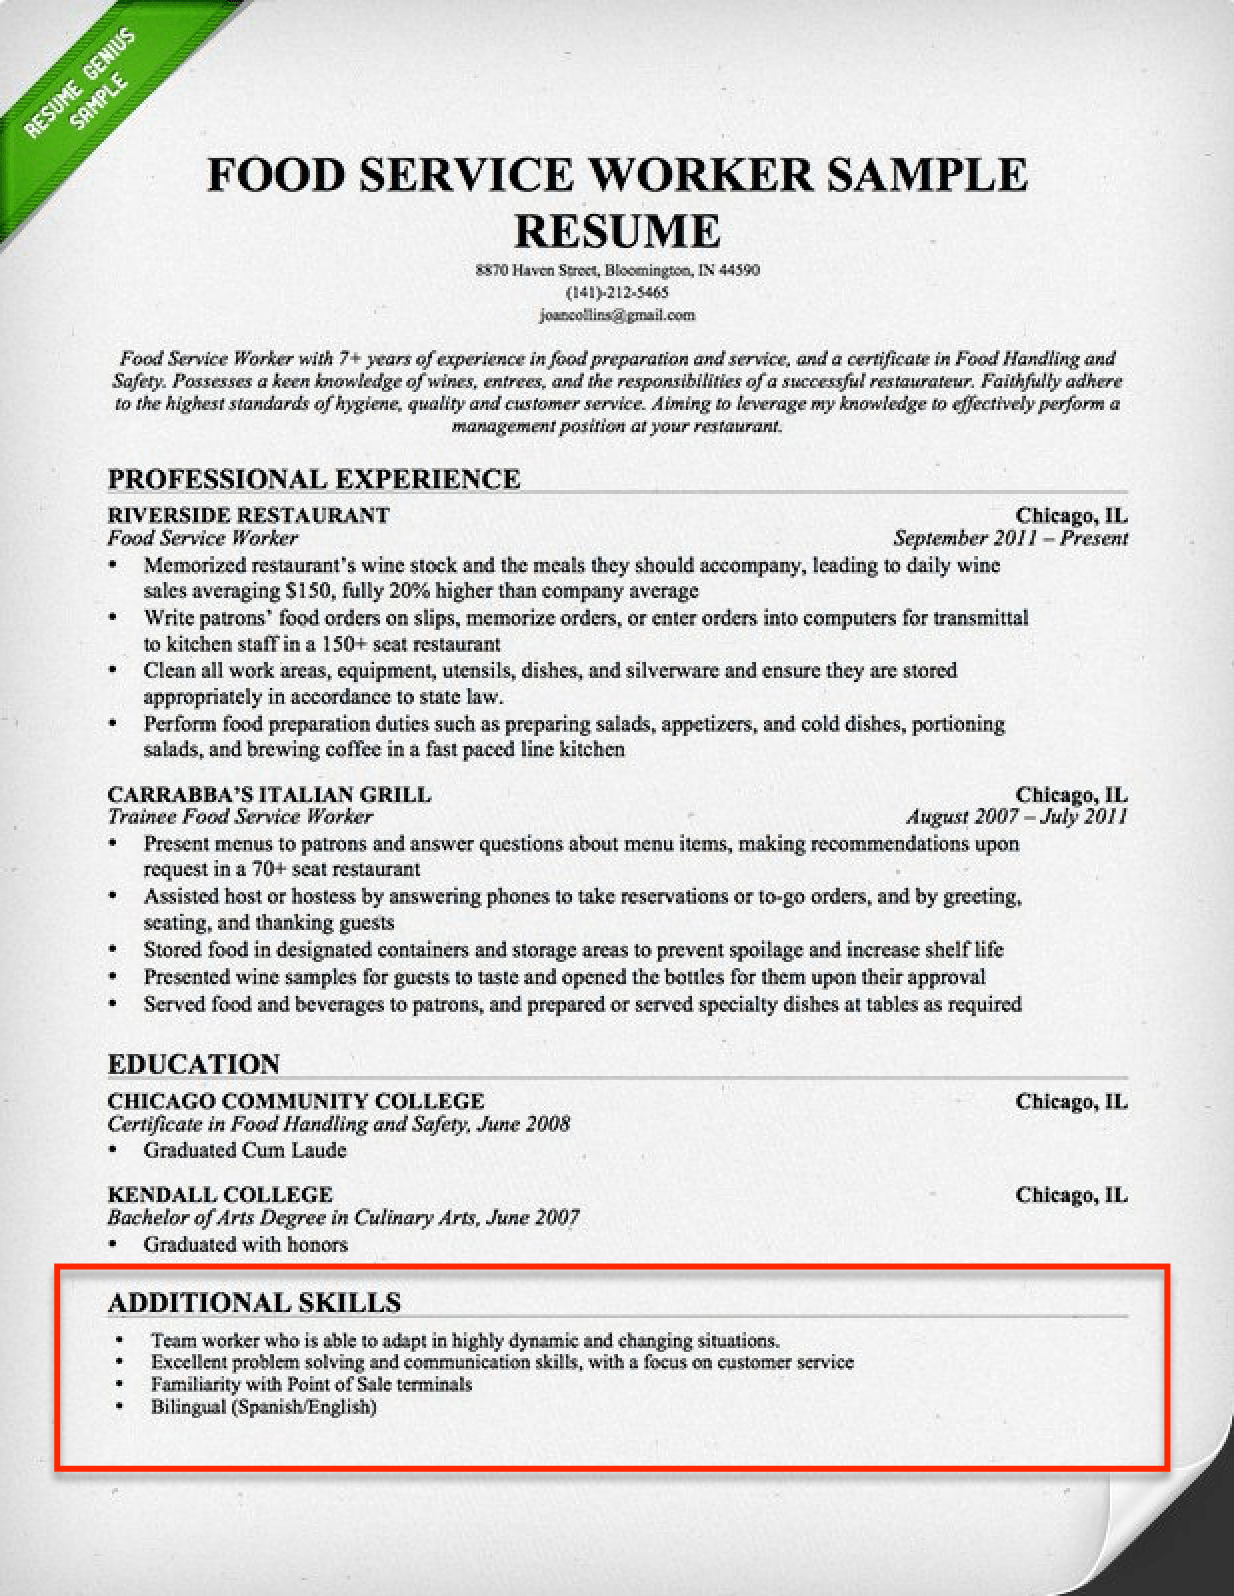 Resume Strengths Resume Skills Section 250 43 Skills For Your Resume